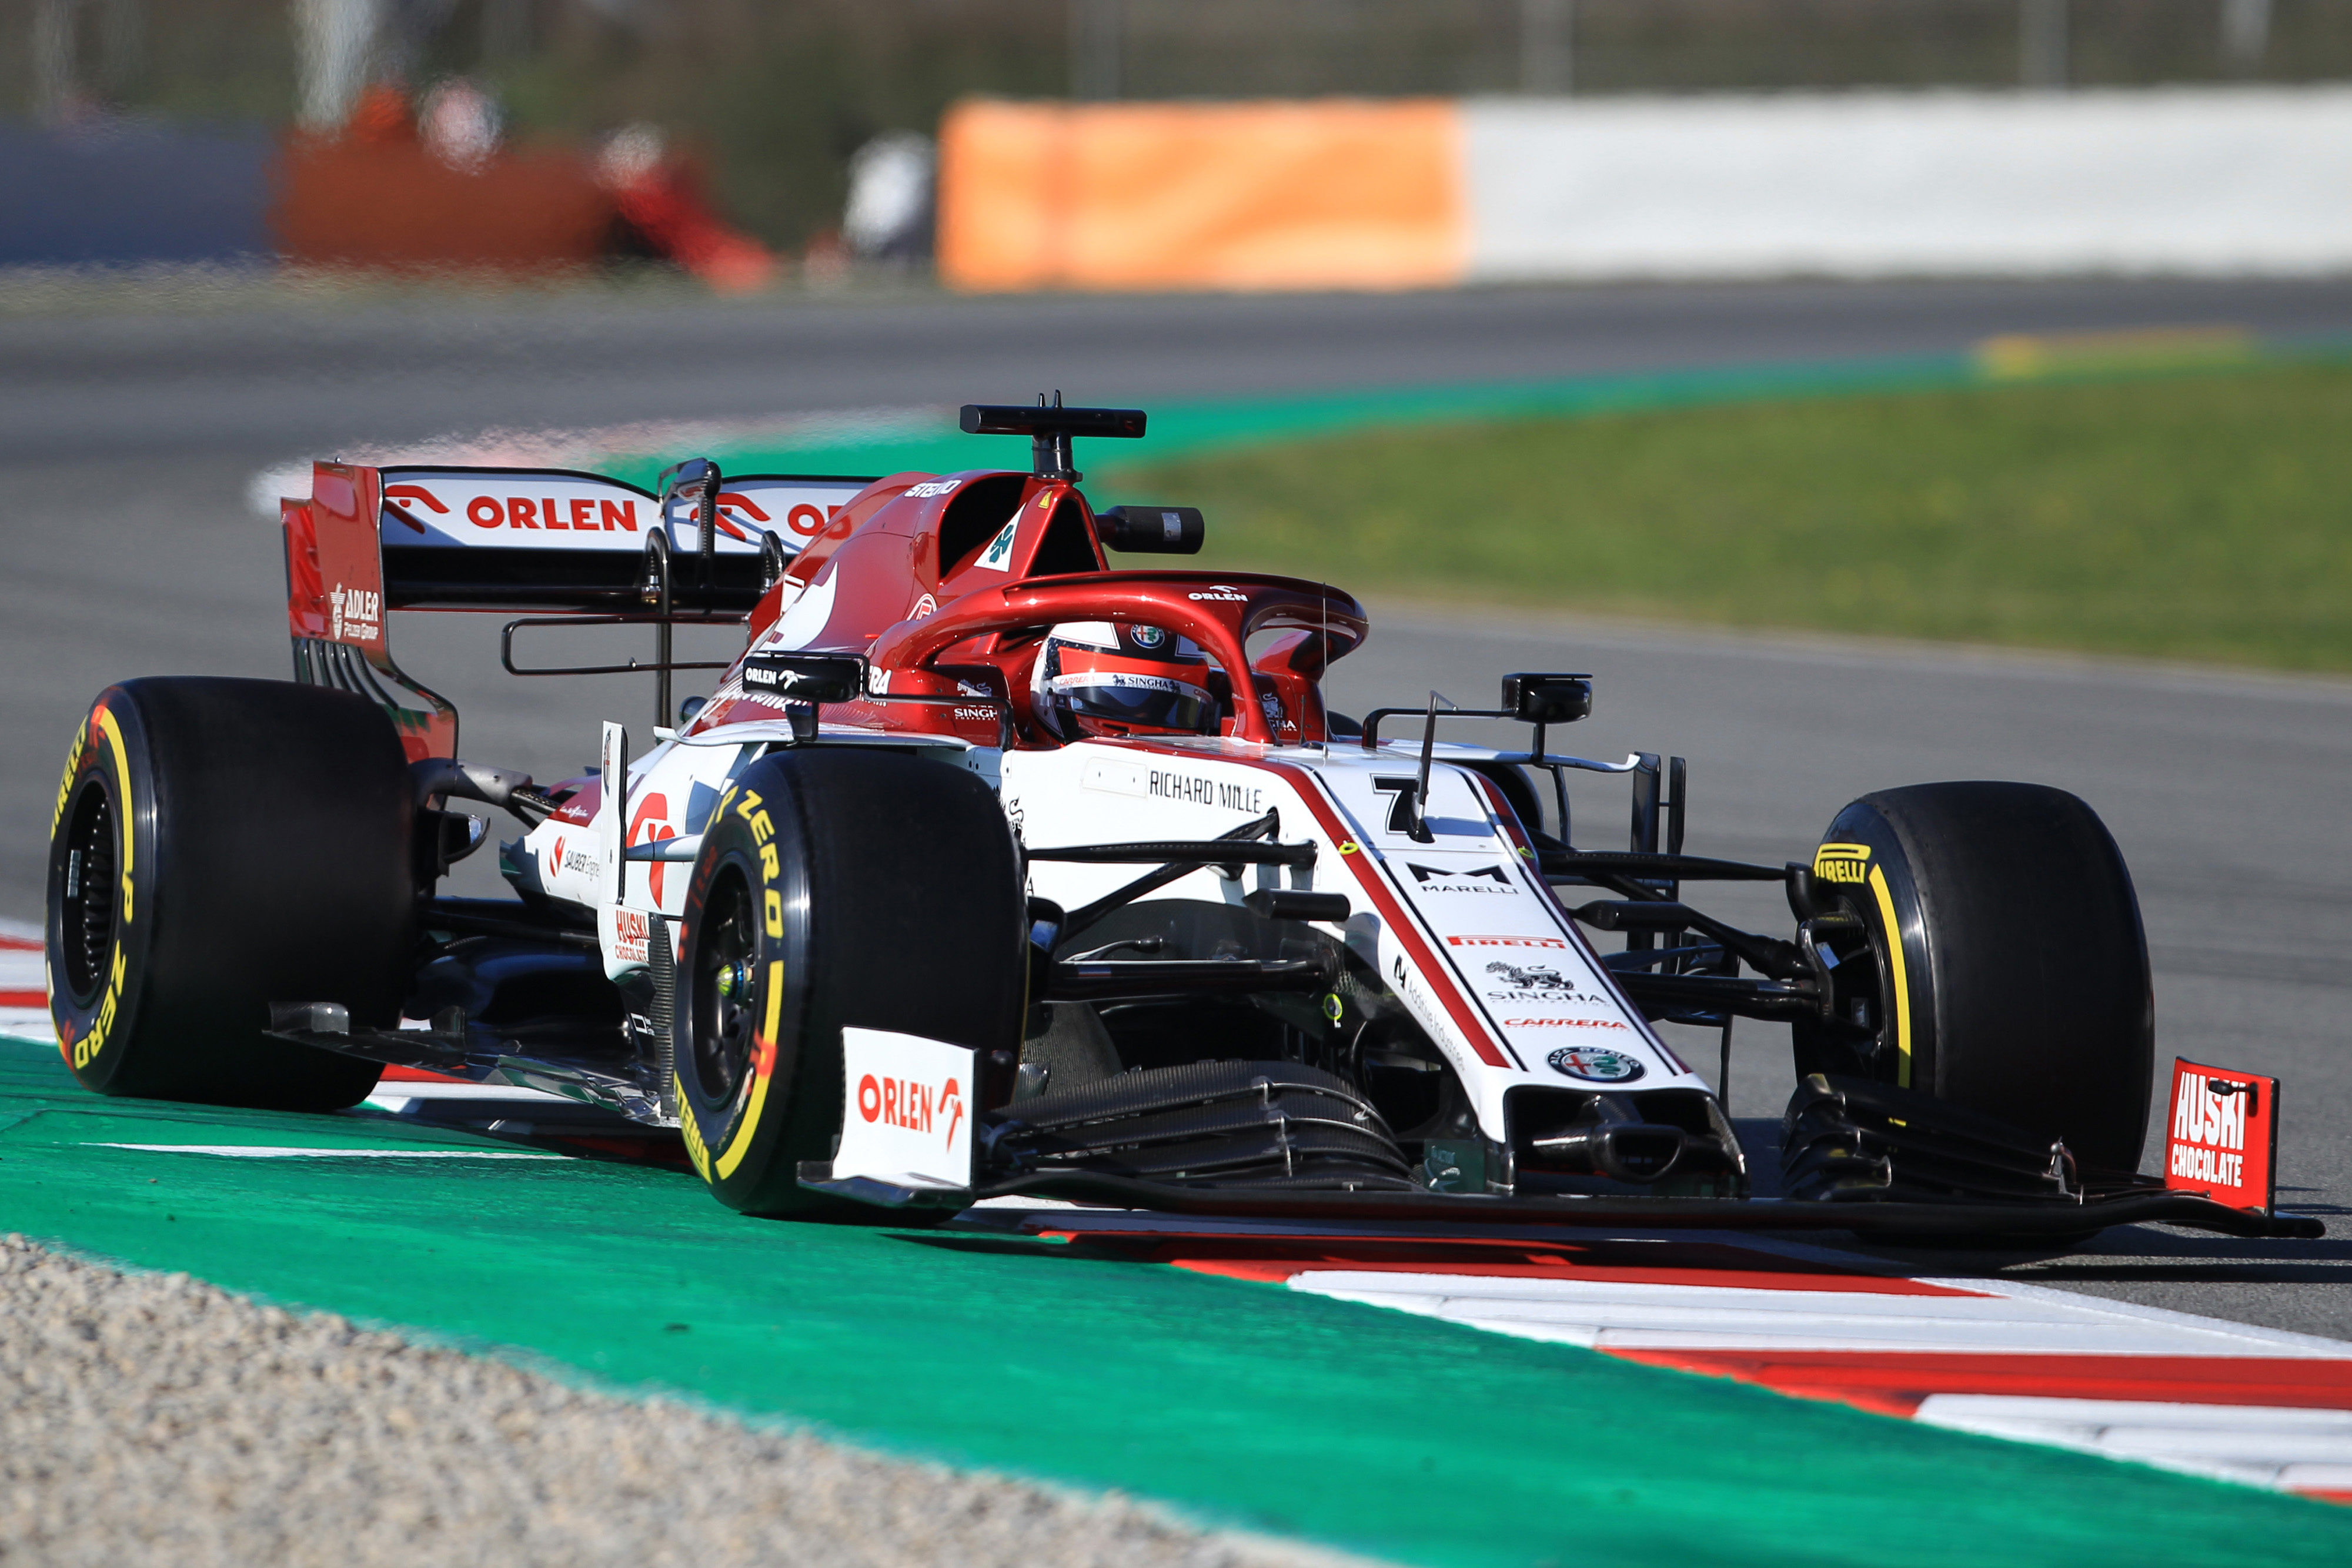 Formula 1 - Raikkonen fastest on Day 2 of testing but triggers red ...